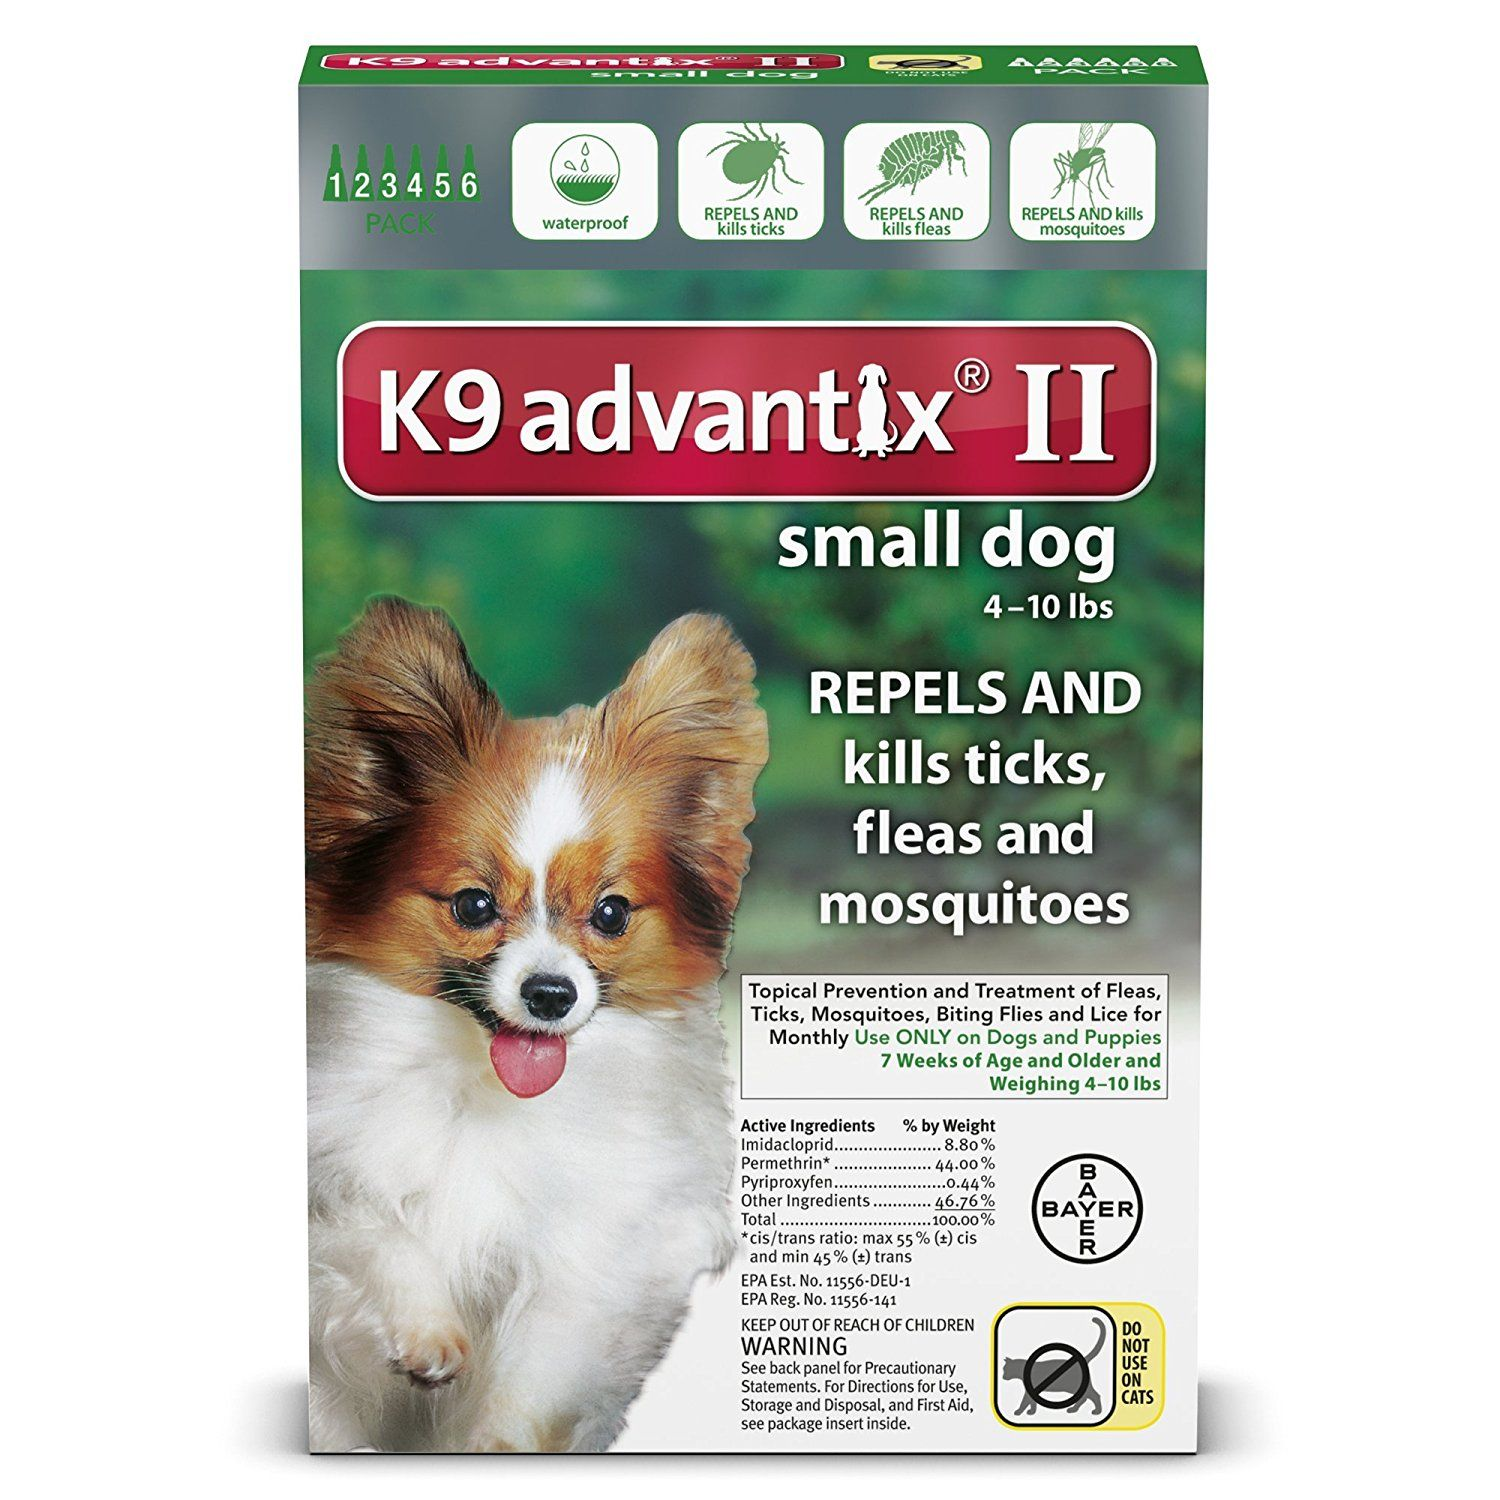 K9 Advantix Ii For Dogs 10 Lbs And Under 6 Count Additional Details At The Pin Image Click It Flea And Tick Control Small Dogs Dogs Fleas